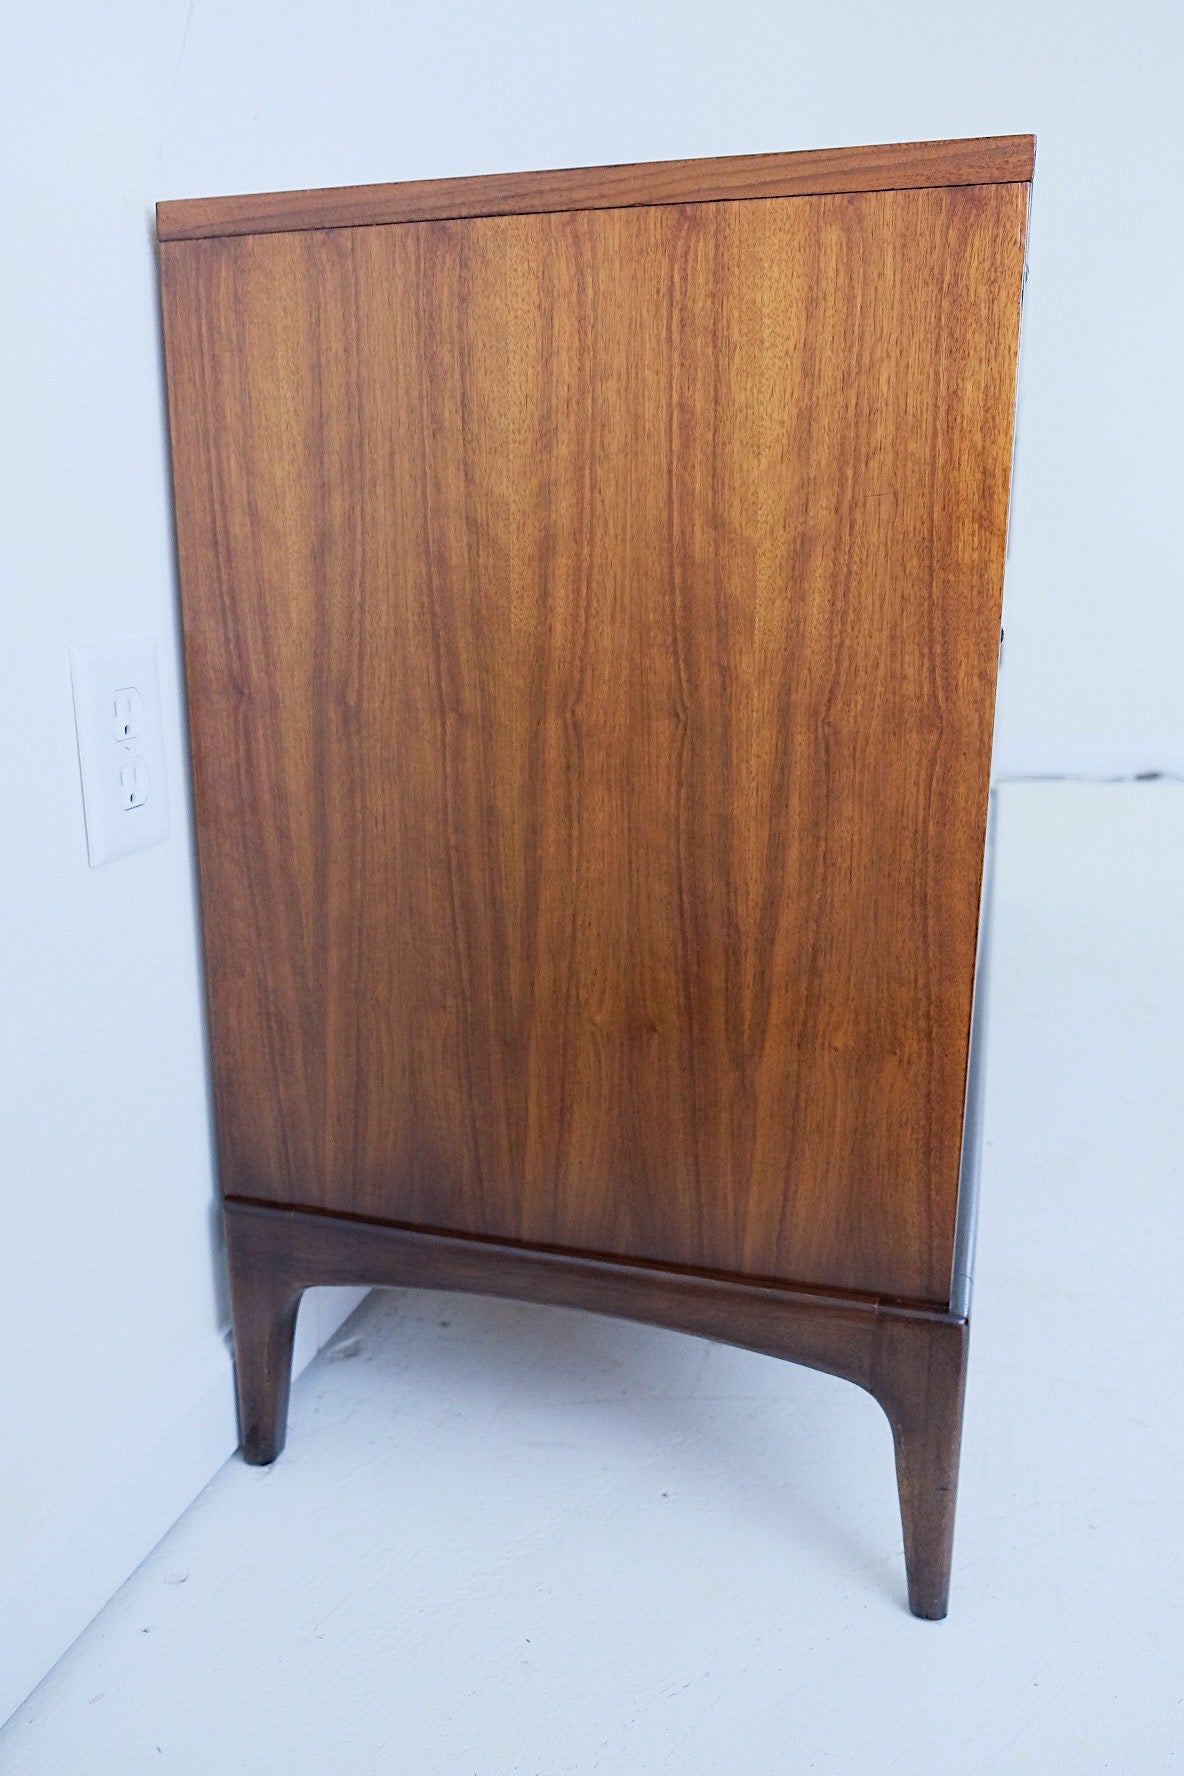 Lane Rhythm Low Nine Drawers Mid Century ModernLane Rhythm Low Nine Drawers Mid Century Modern